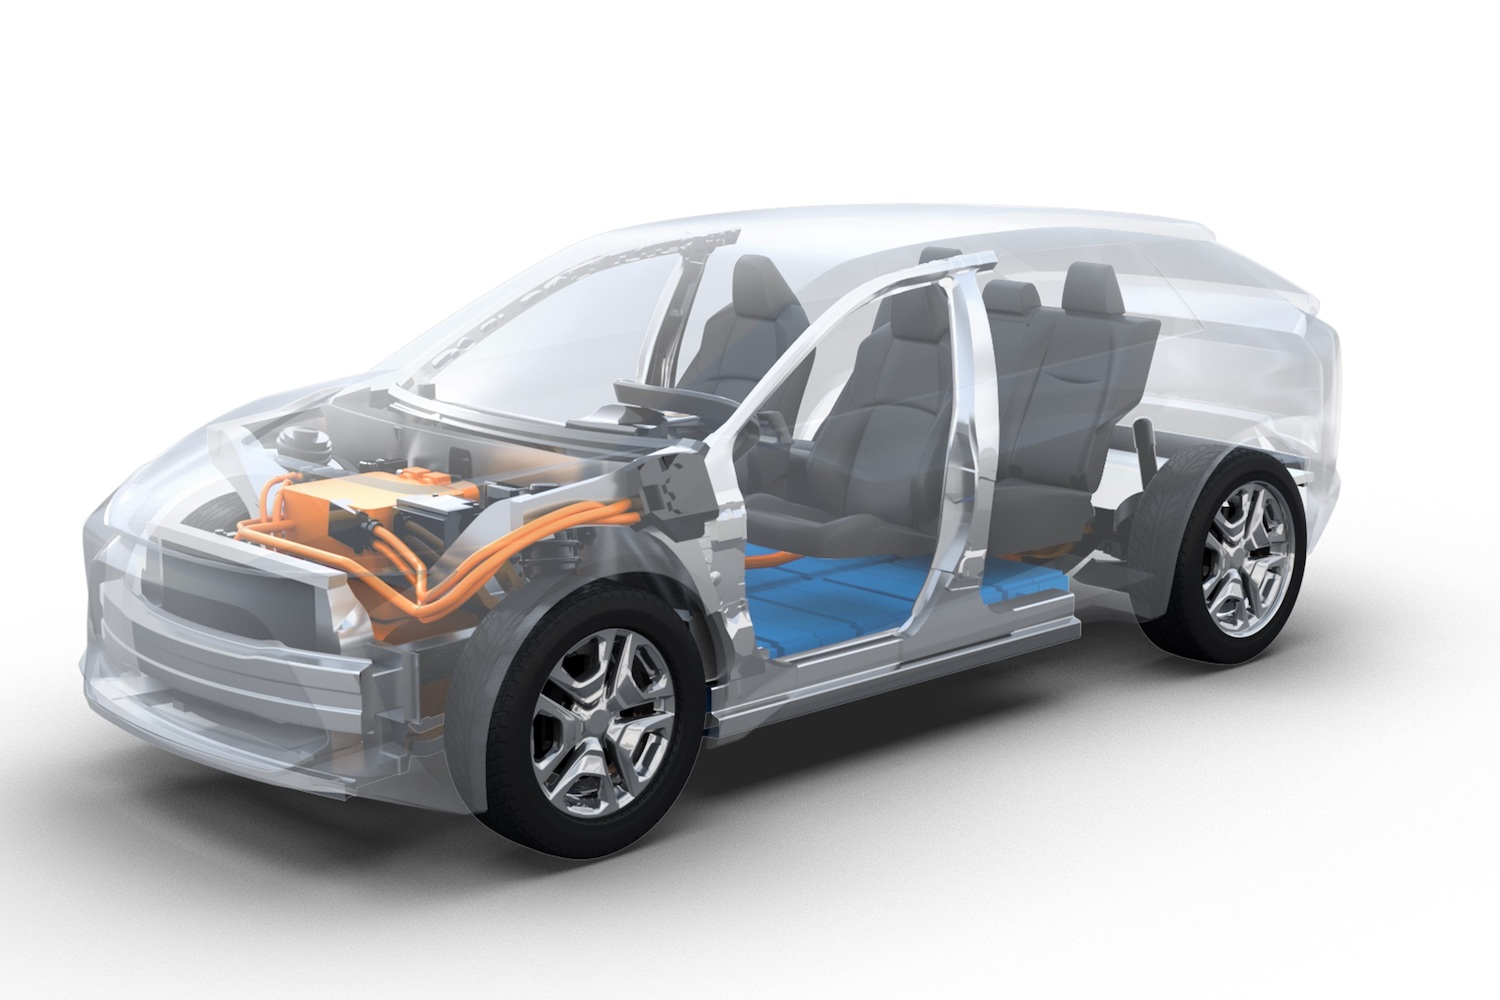 Car News | Subaru confirms first all-electric model for Europe | CompleteCar.ie